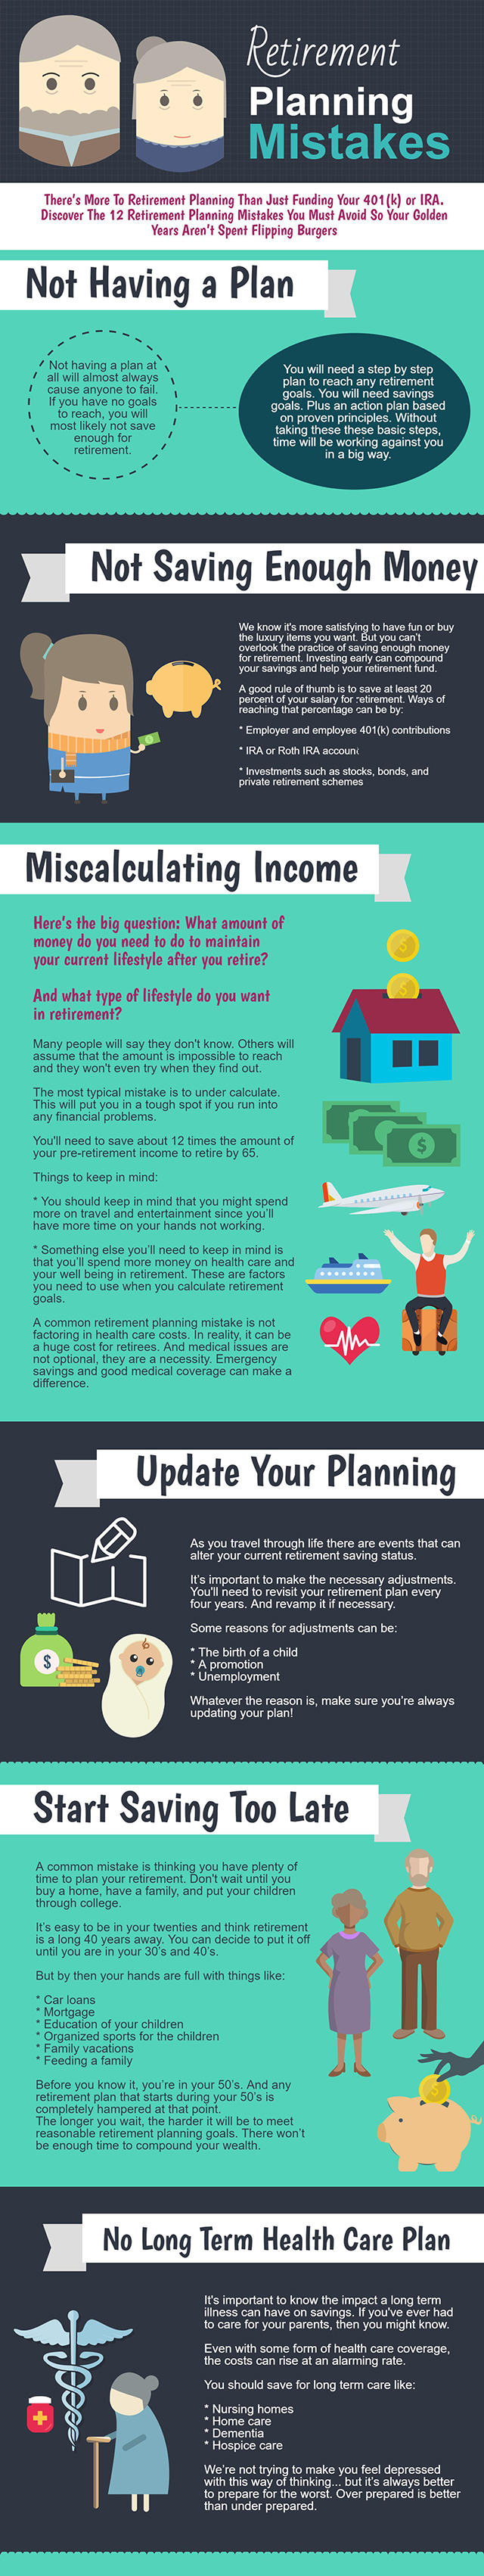 Retirement Planning Mistakes - Infographic